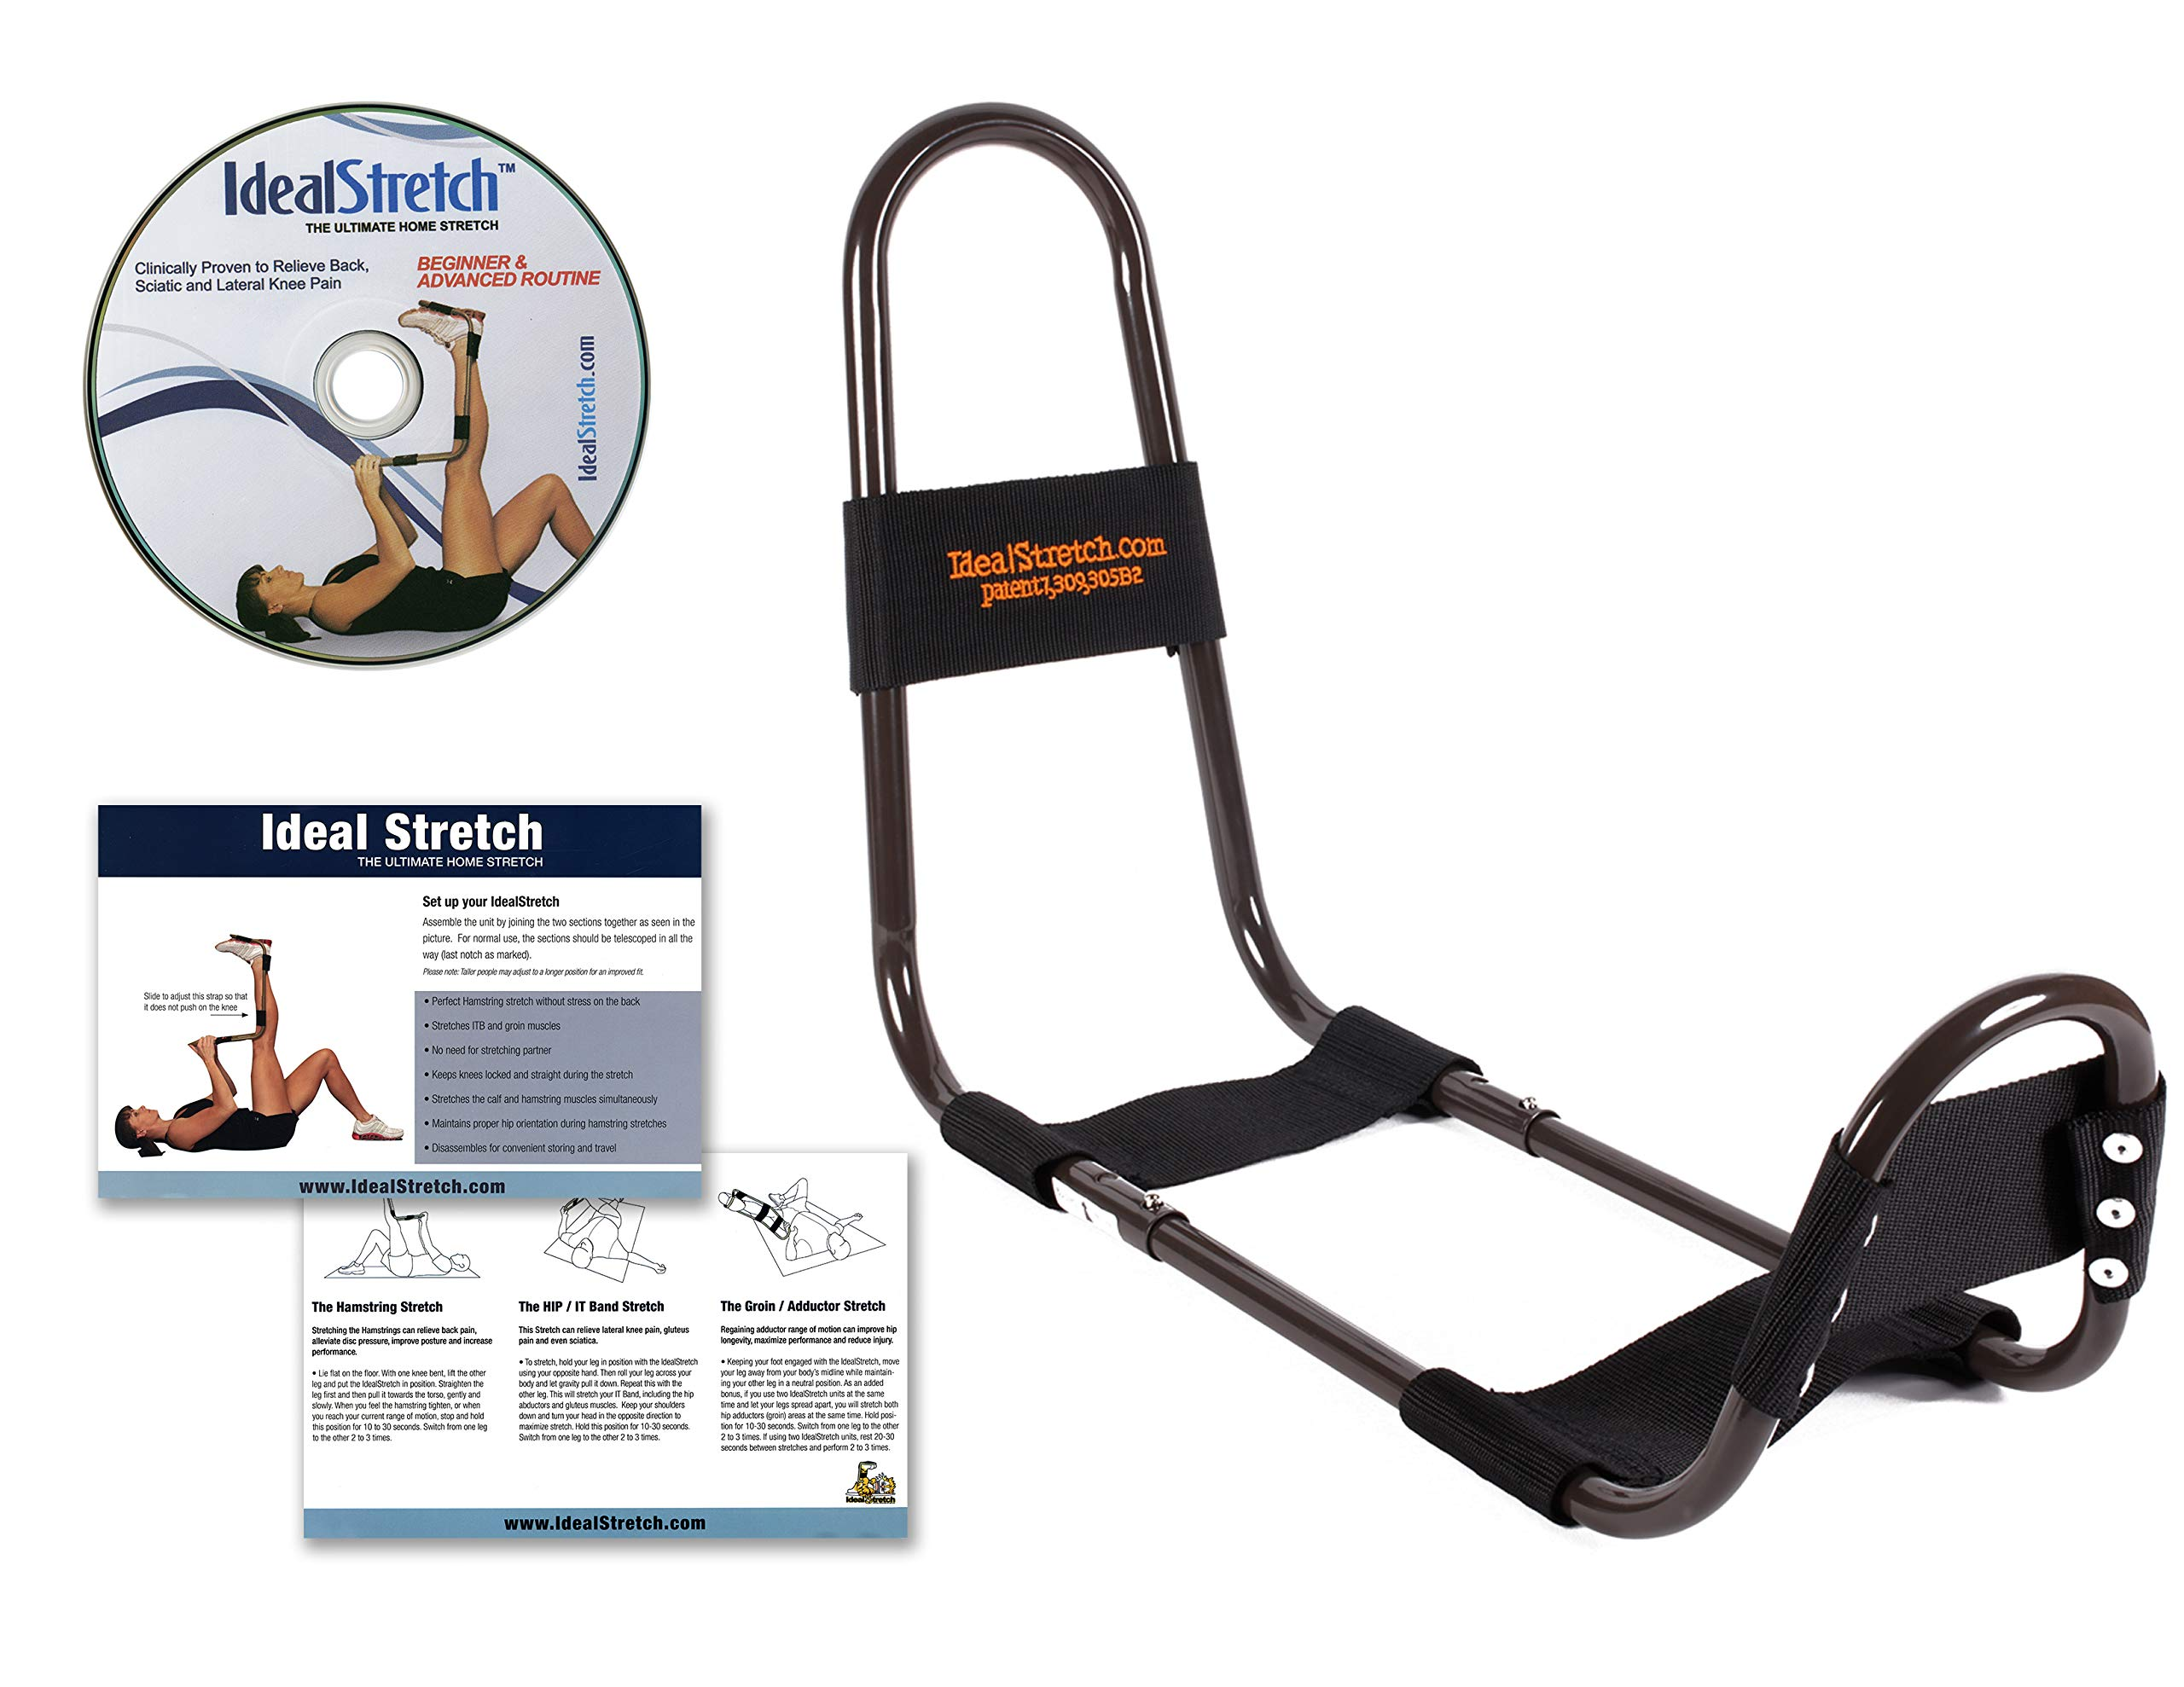 IdealStretch Original Hamstring, Leg, and Knee Stretching Device